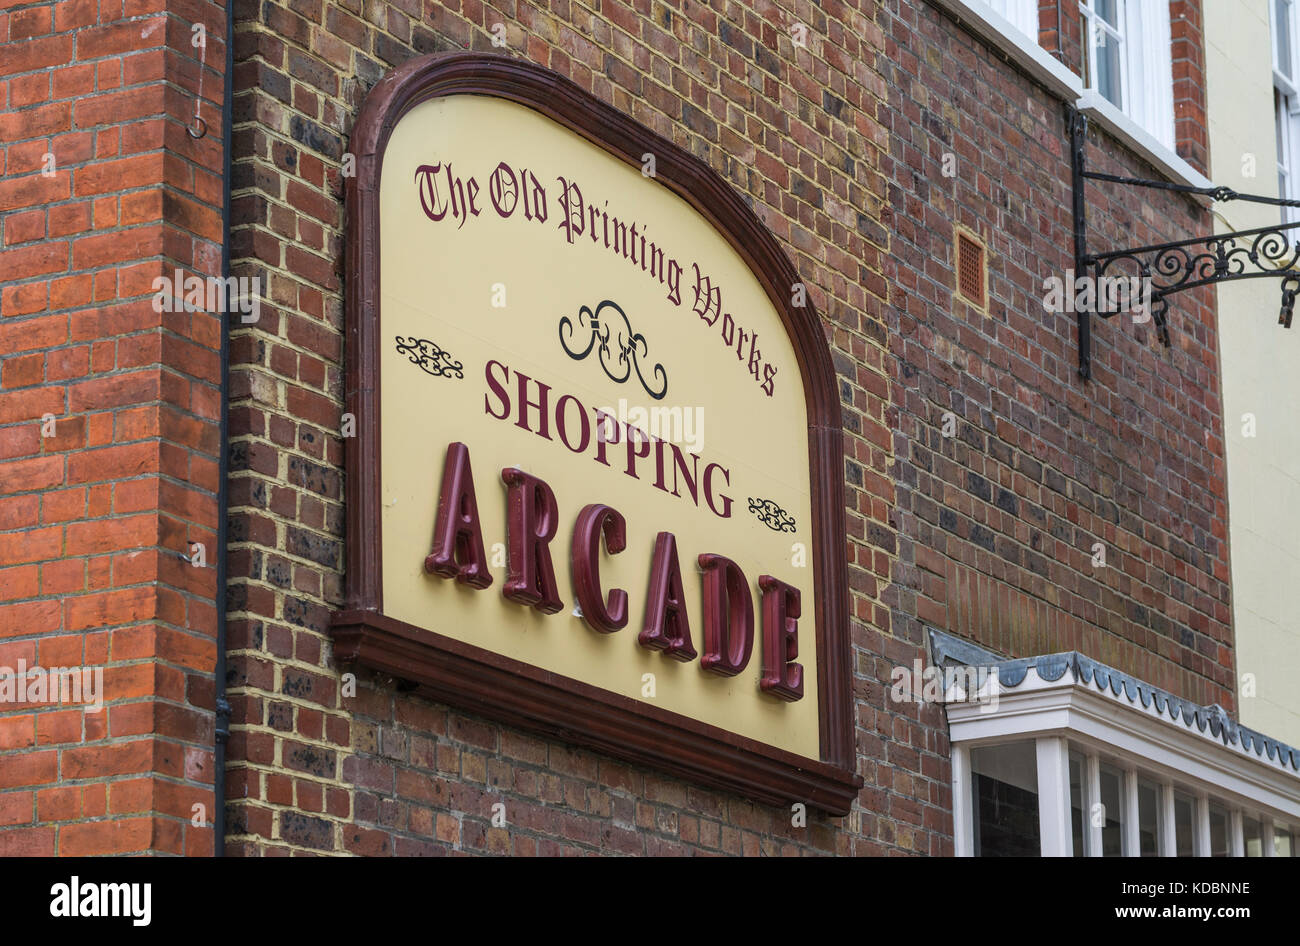 The Old Printing Works Shopping Arcade in Arundel, West Sussex, England, UK. - Stock Image